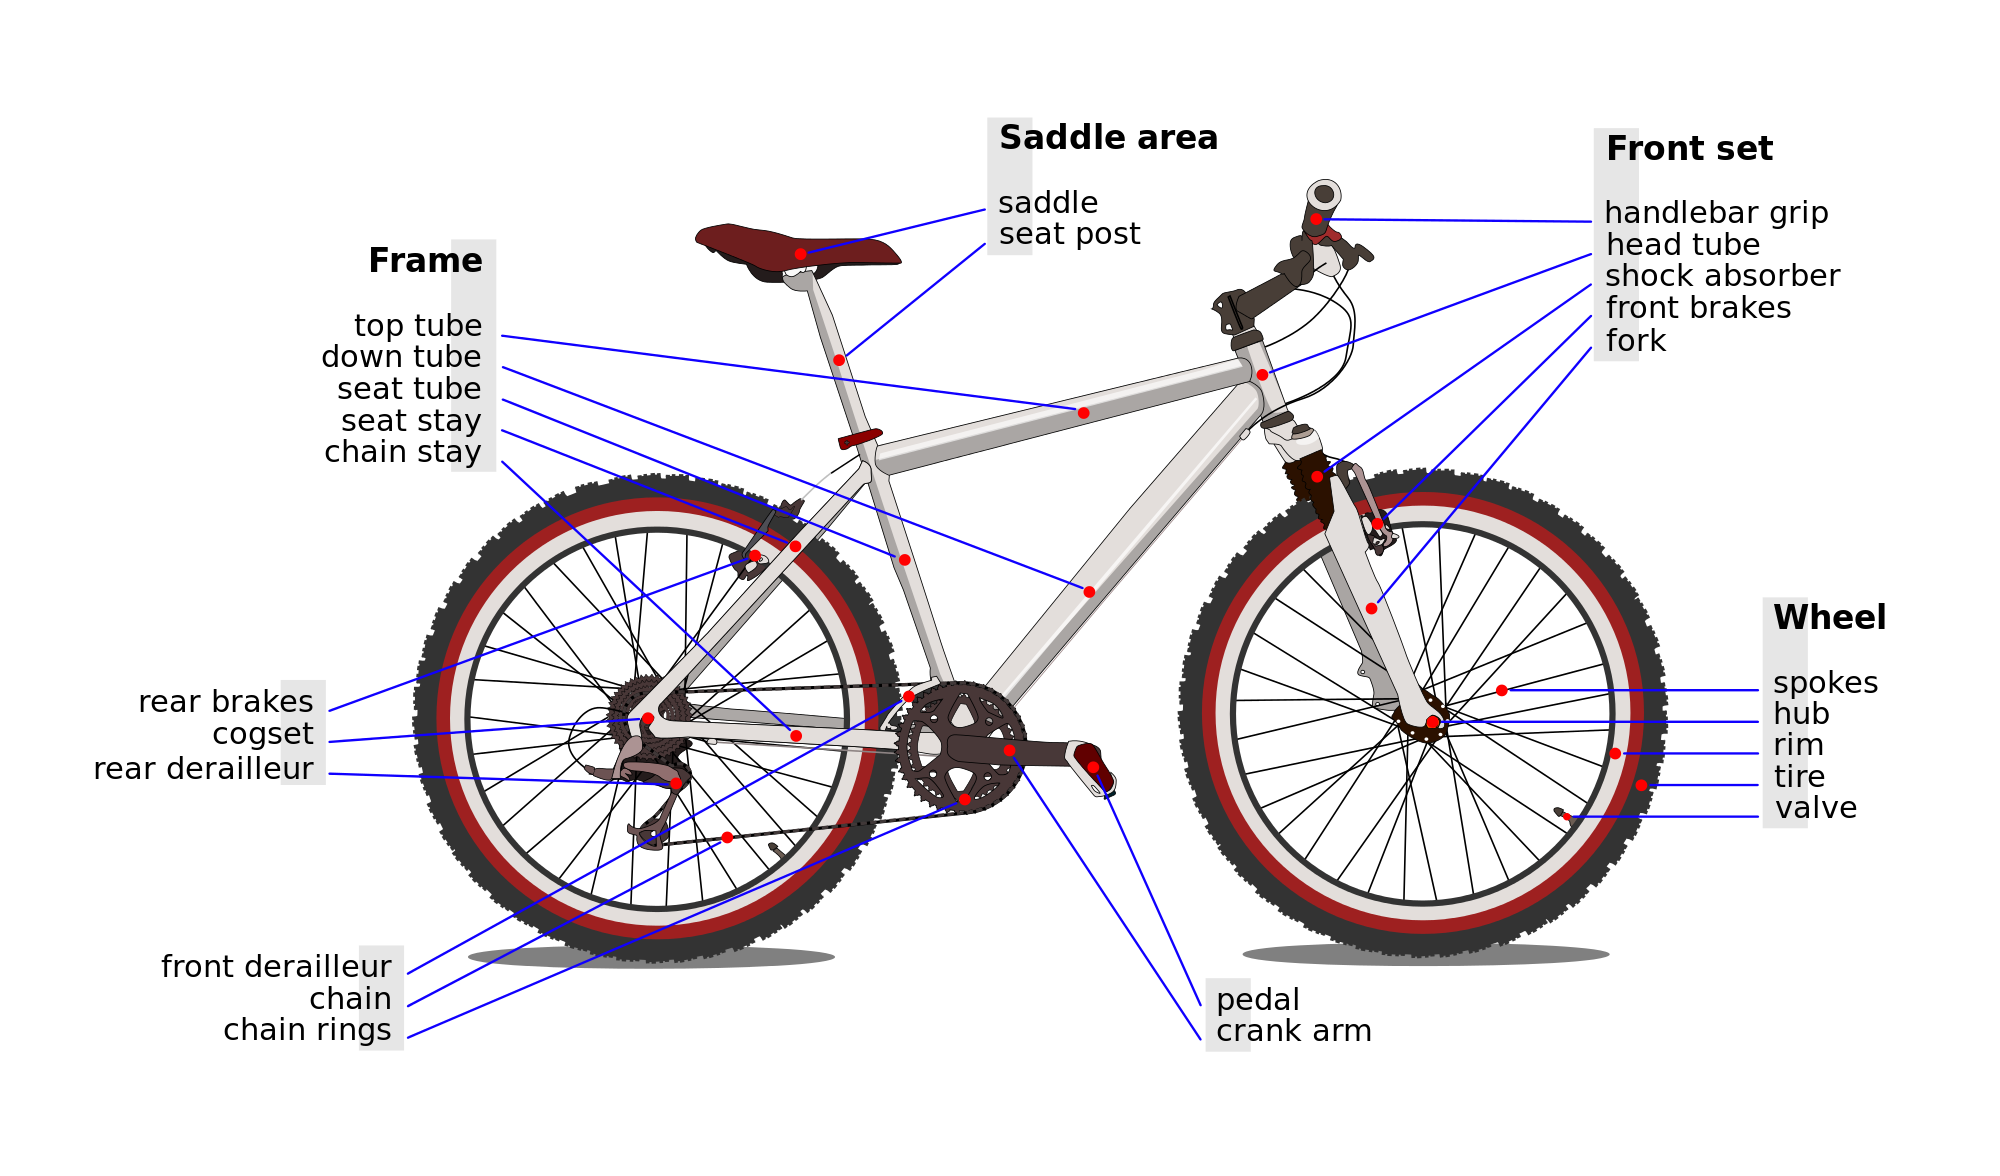 Bike Parts Drawing File:bicycle Diagram-en.svg